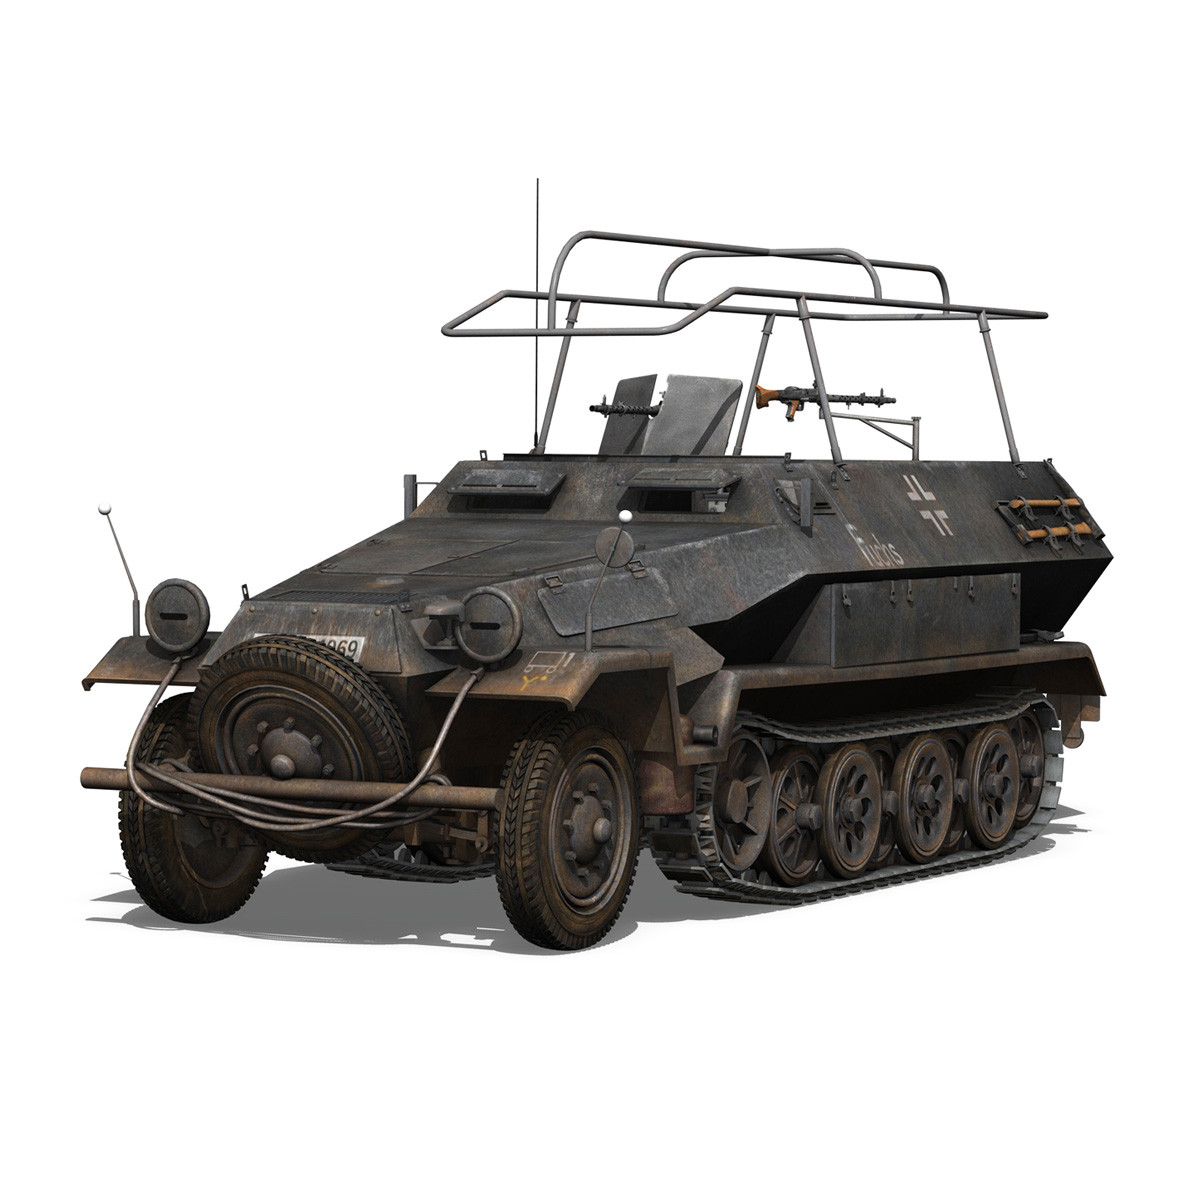 sd.kfz 251 ausf b – communications vehicle – 8pd 3d model 3ds fbx lwo lw lws obj c4d 292025